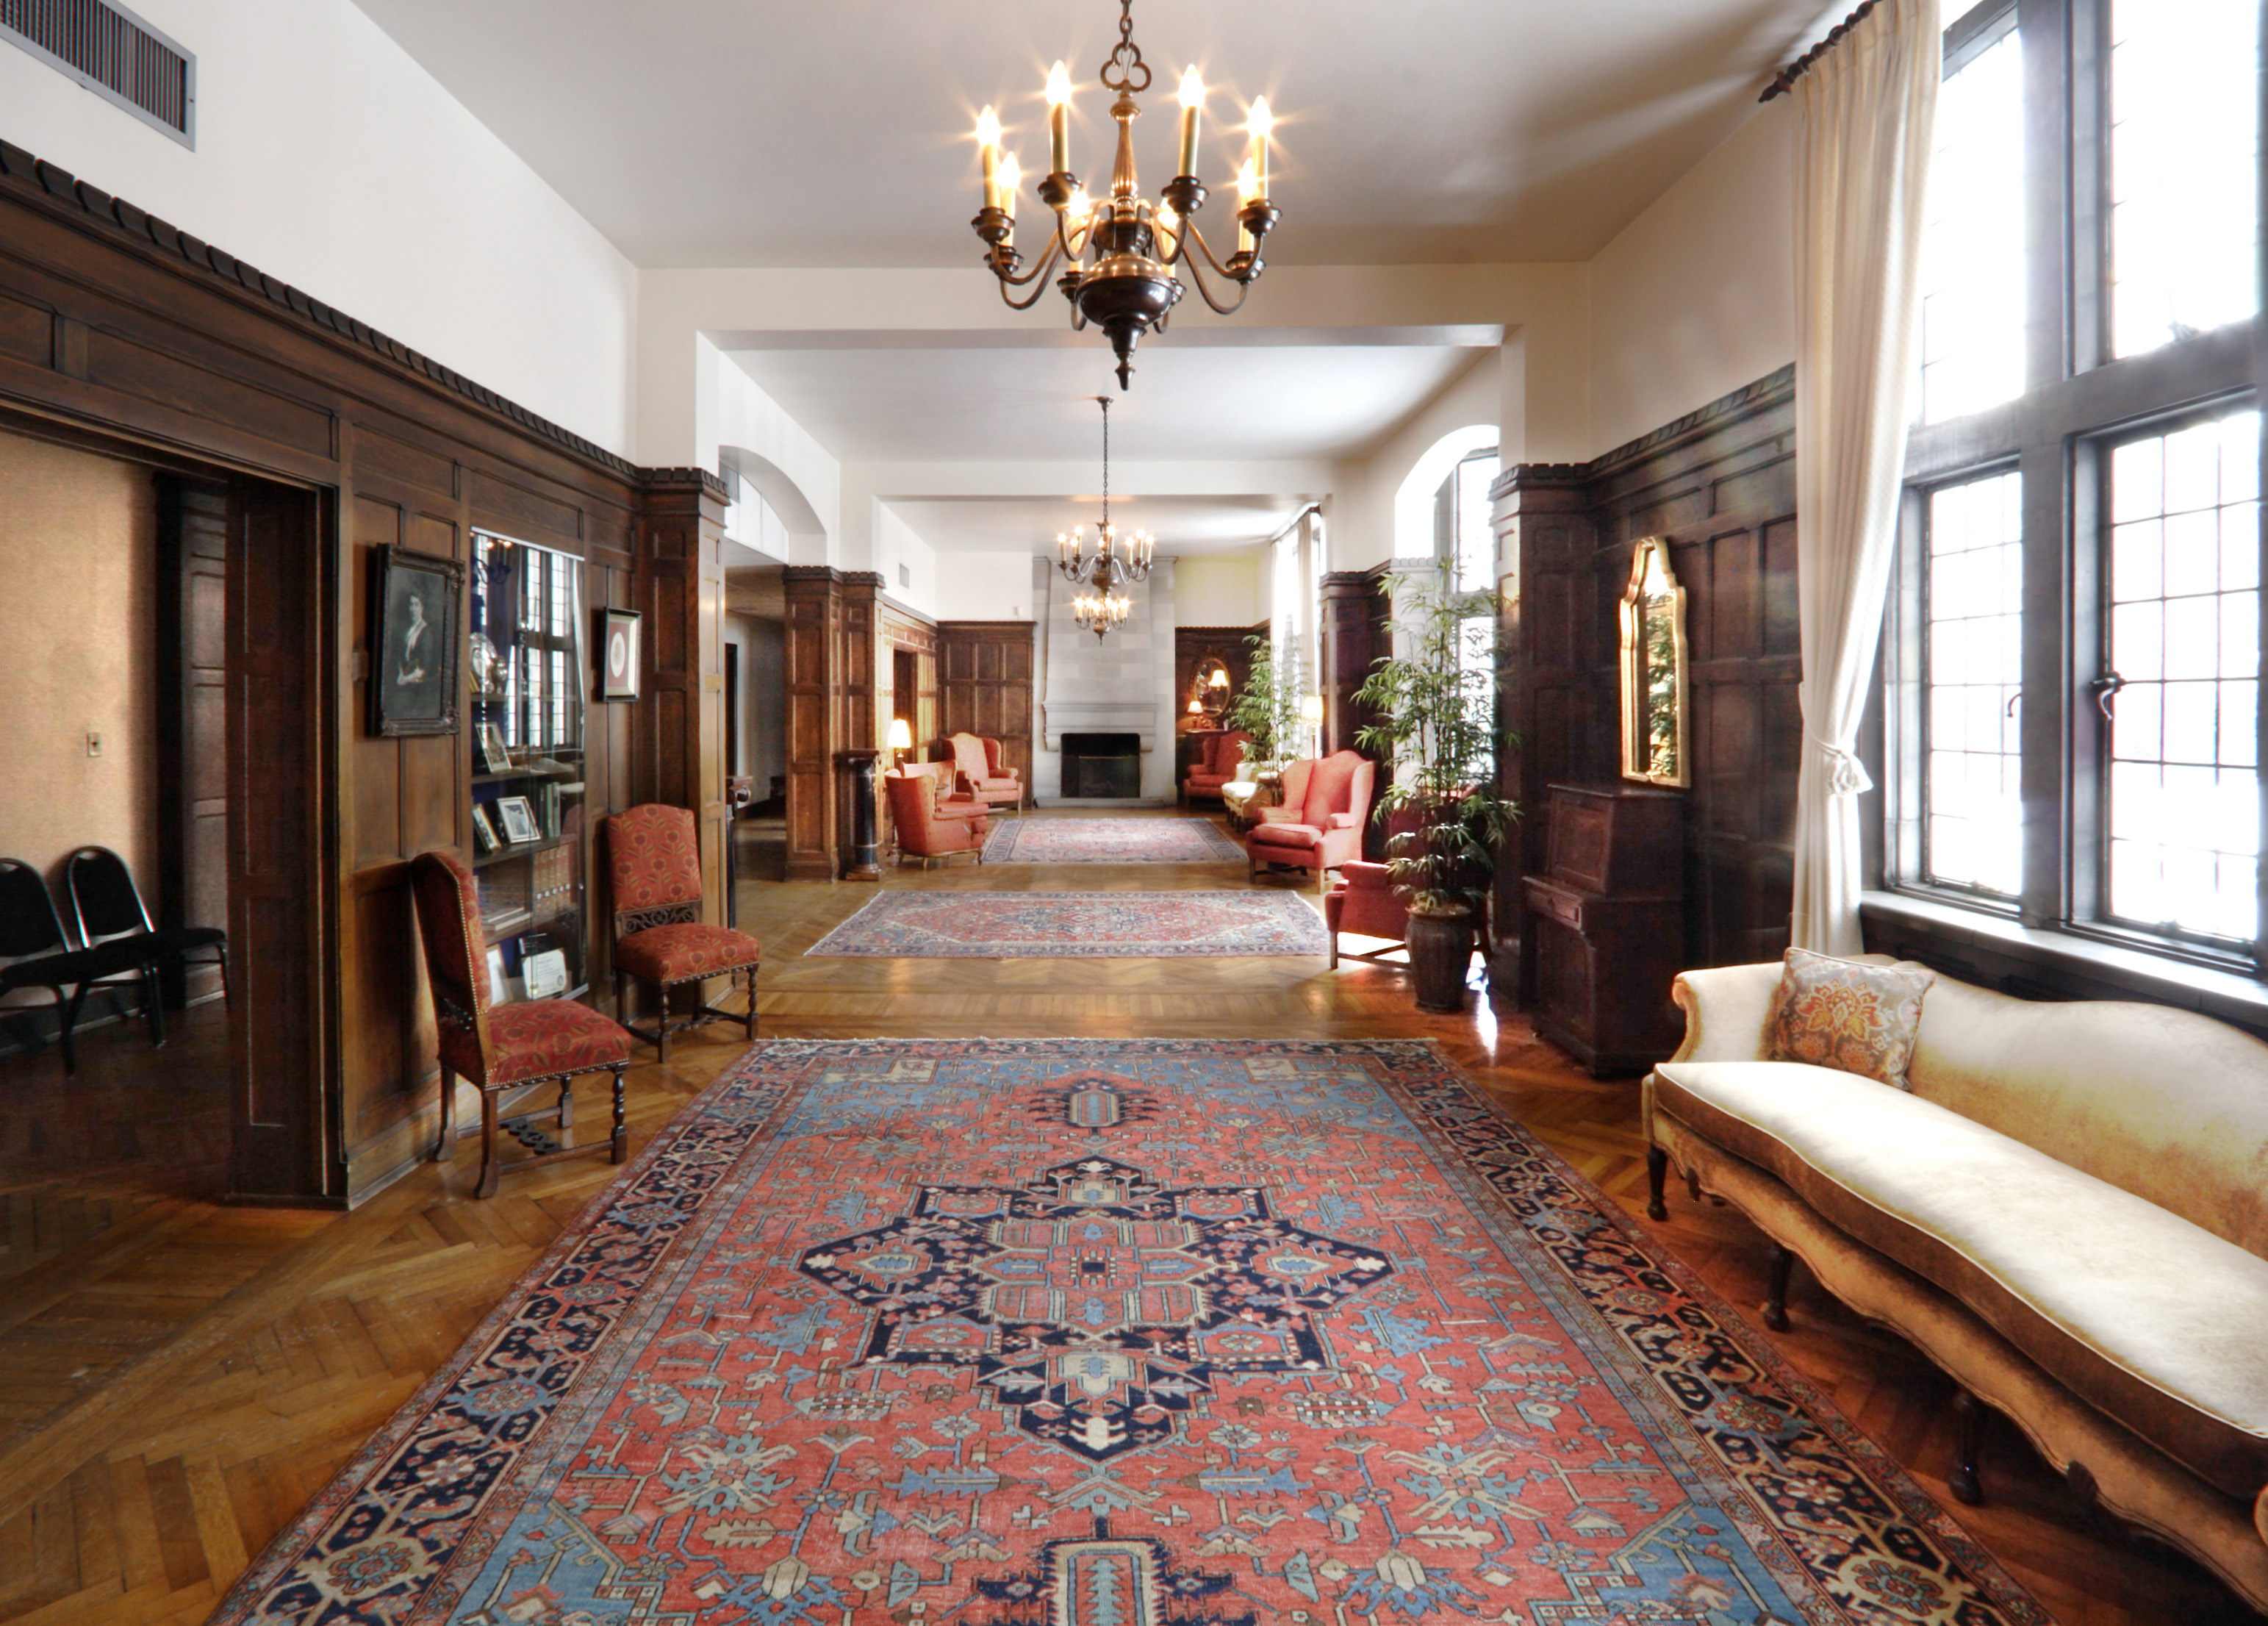 Room with carpets and chandeliers